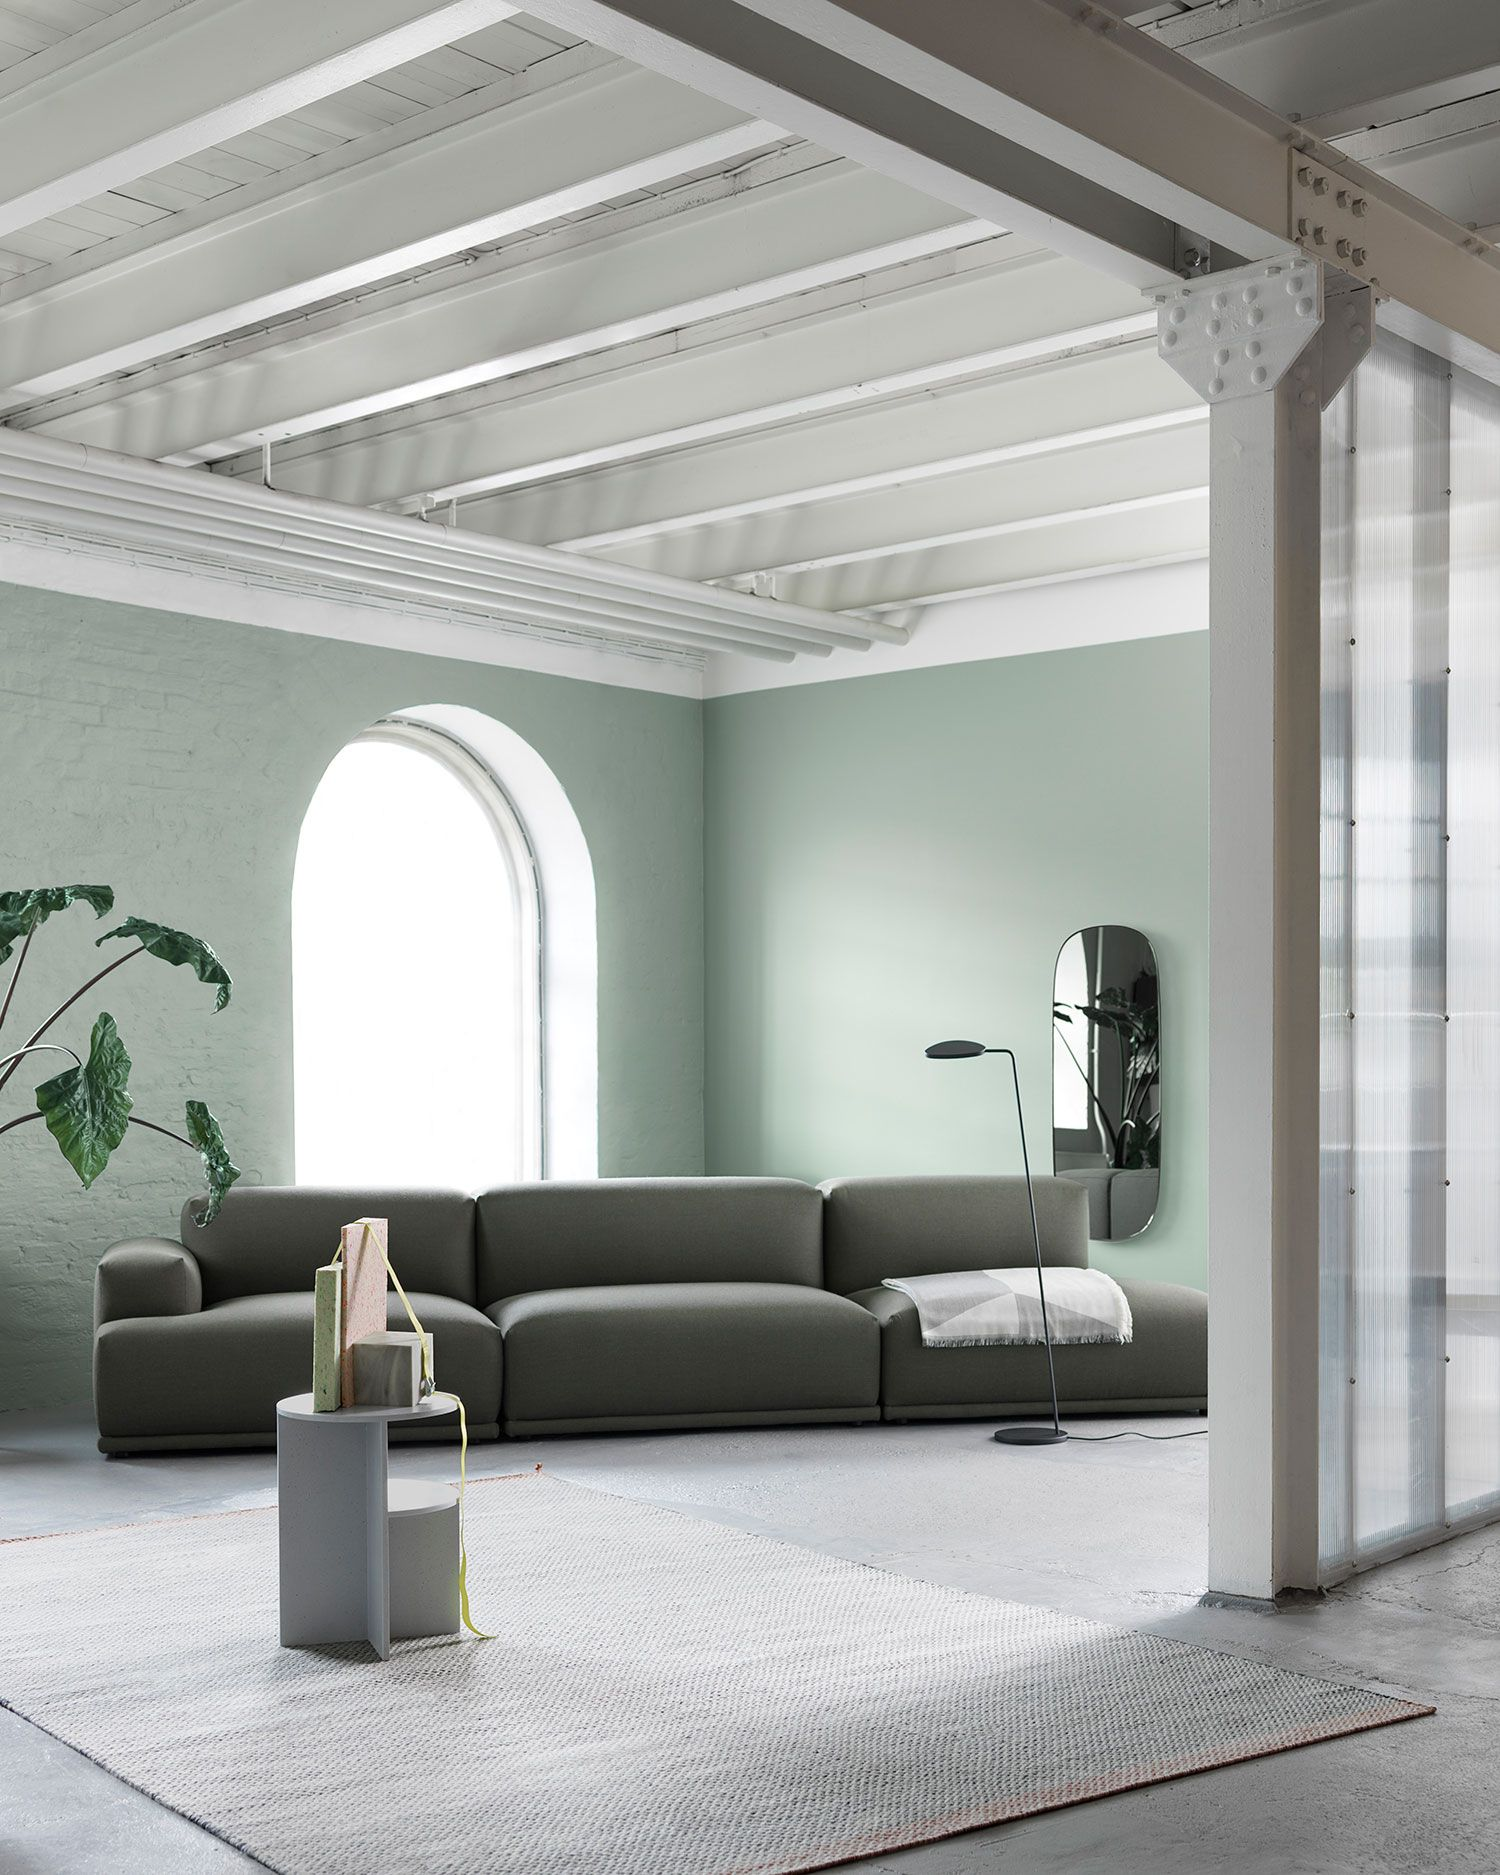 Comment Installer Un Eclairage Exterieur modular sofa inspiration from muuto: with 11 possible